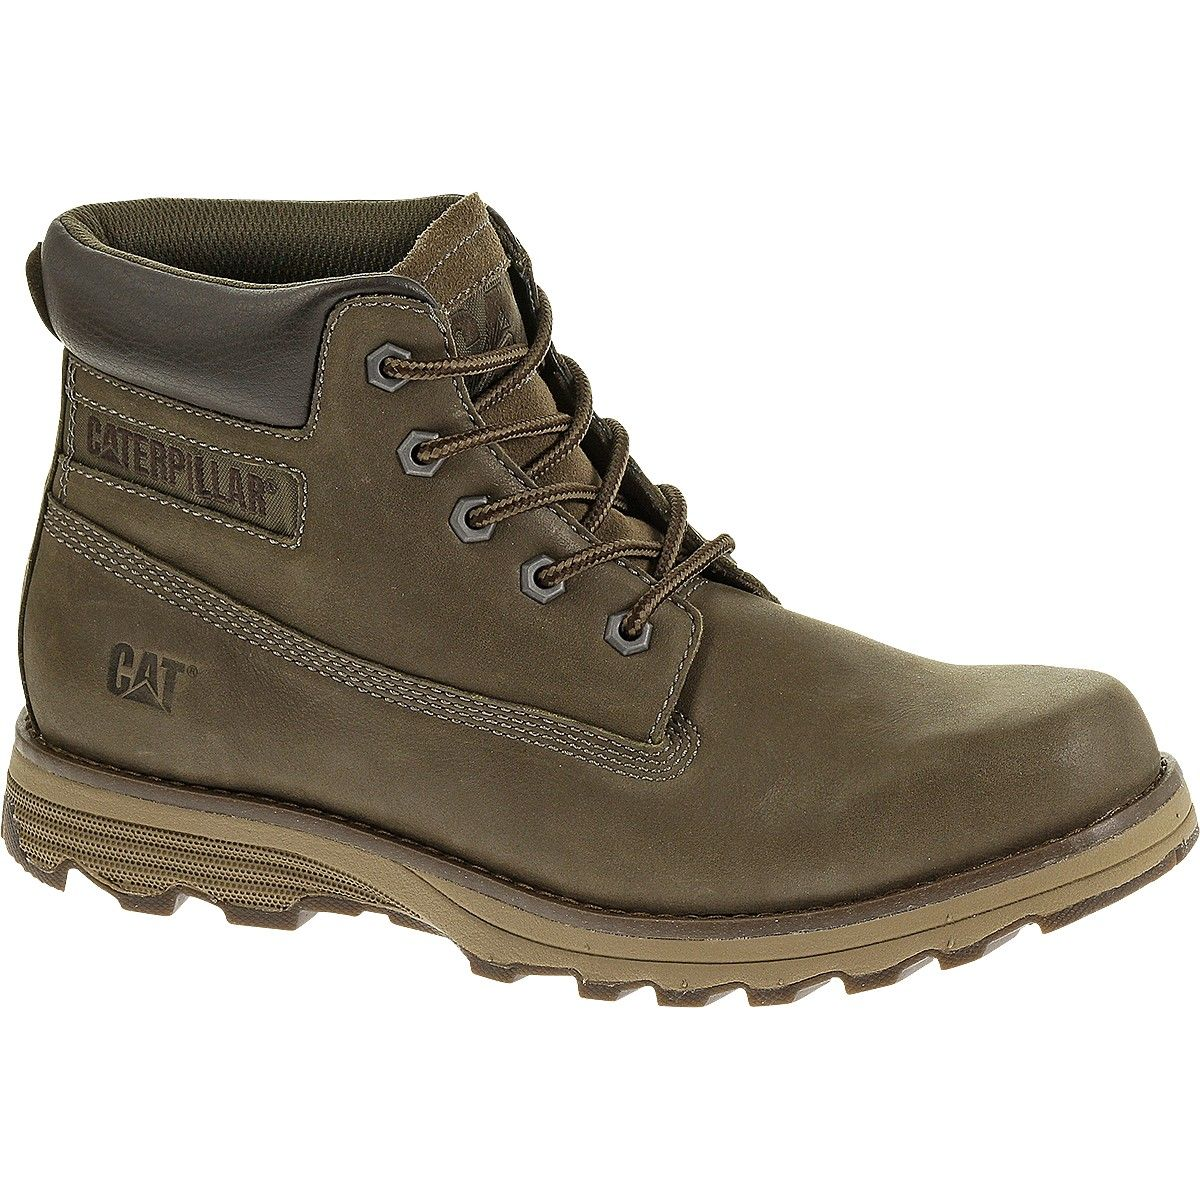 Caterpillar Men's Founder Boot – Go Shop Shoes